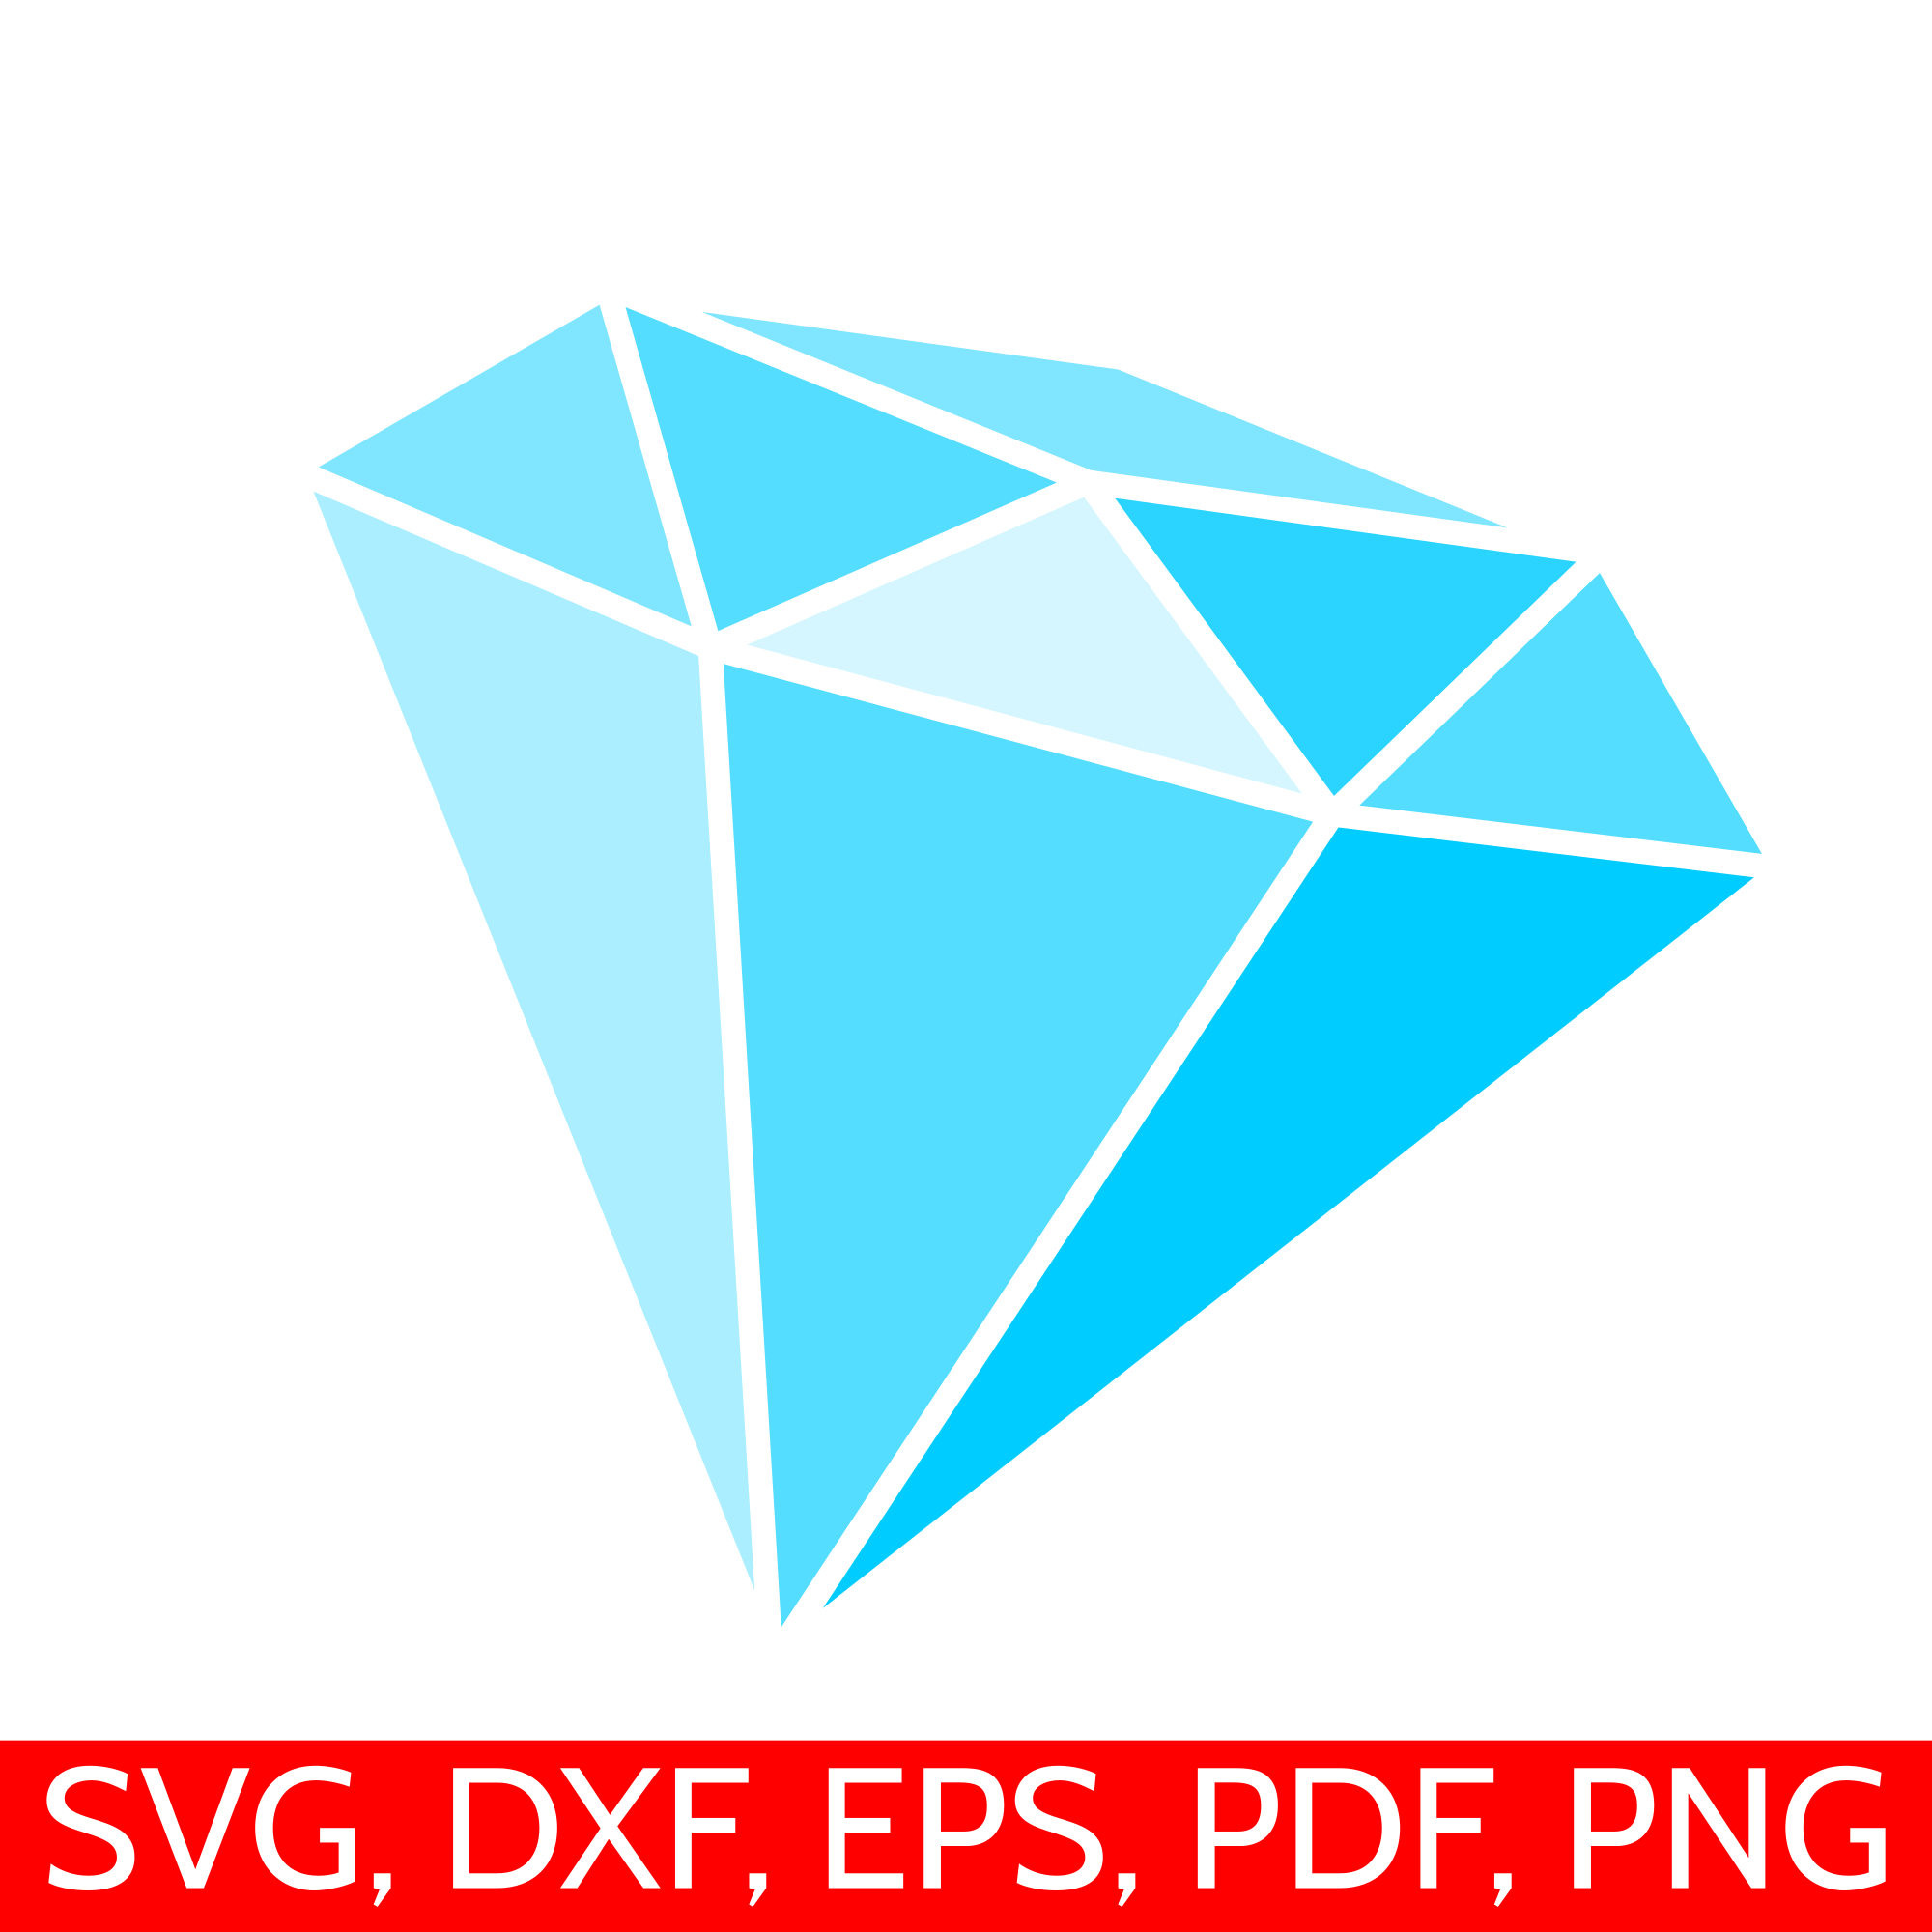 2000x2000 Blue Diamond Png Clip Art Gallery Yopriceville High Quality